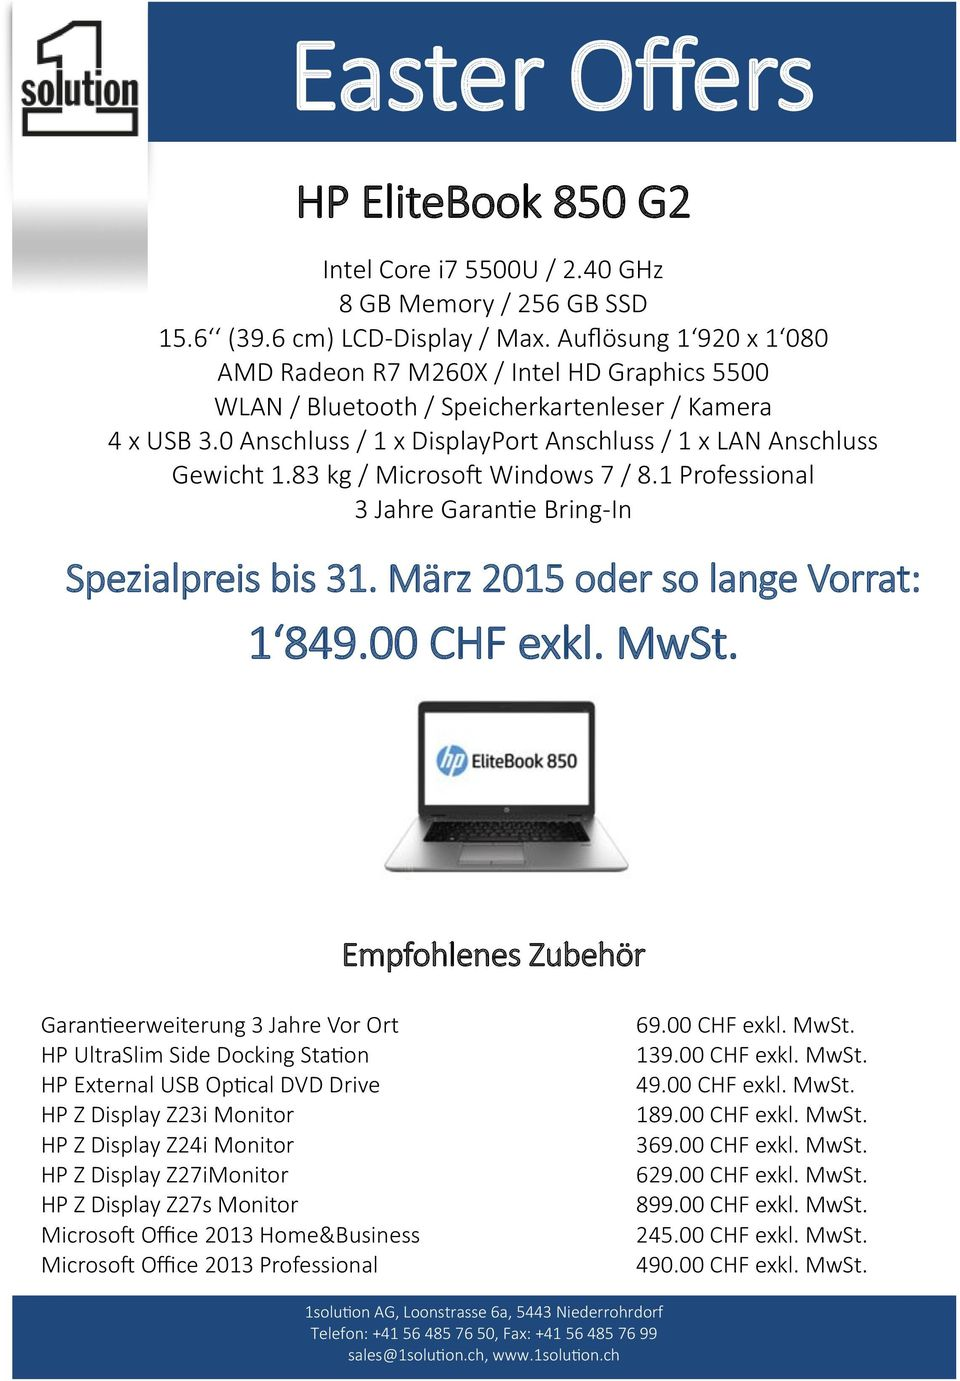 0 Anschluss / 1 x DisplayPort Anschluss / 1 x LAN Anschluss Gewicht 1.83 kg / Microsoft Windows 7 / 8.1 Professional 3 Jahre Garantie Bring-In 1 849.